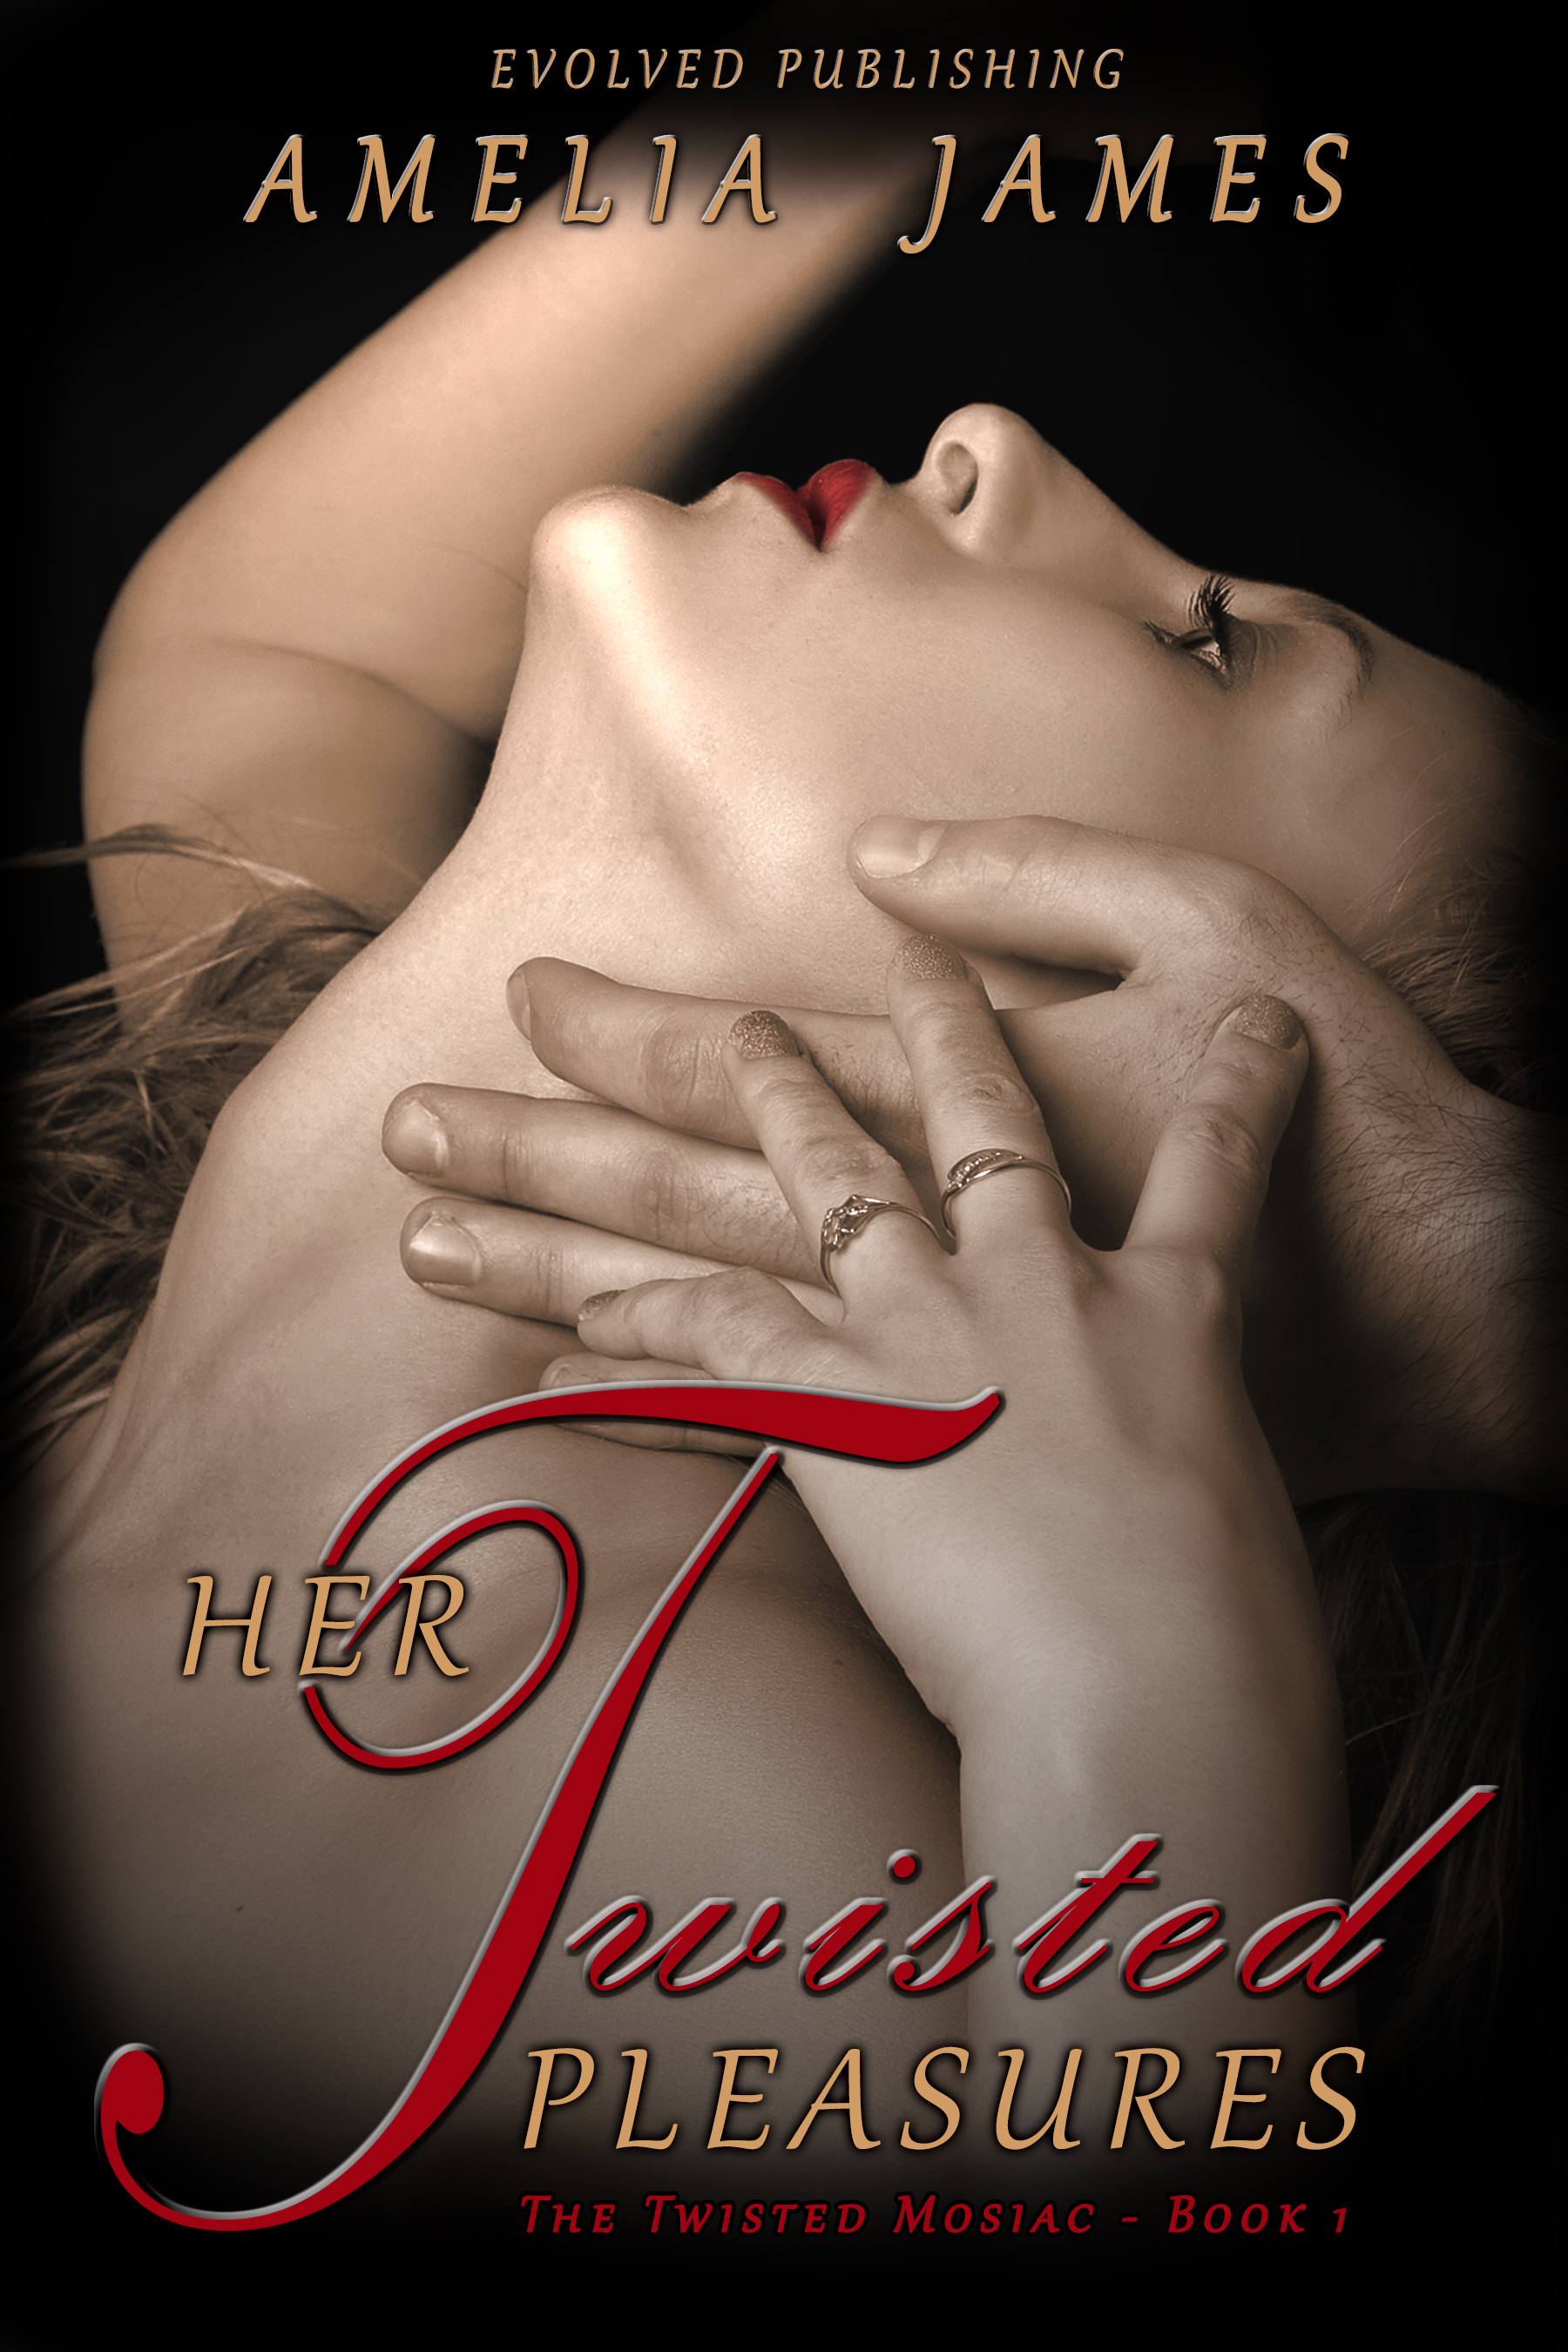 Her Twisted Pleasures - The Twisted Mosaic, Book 1